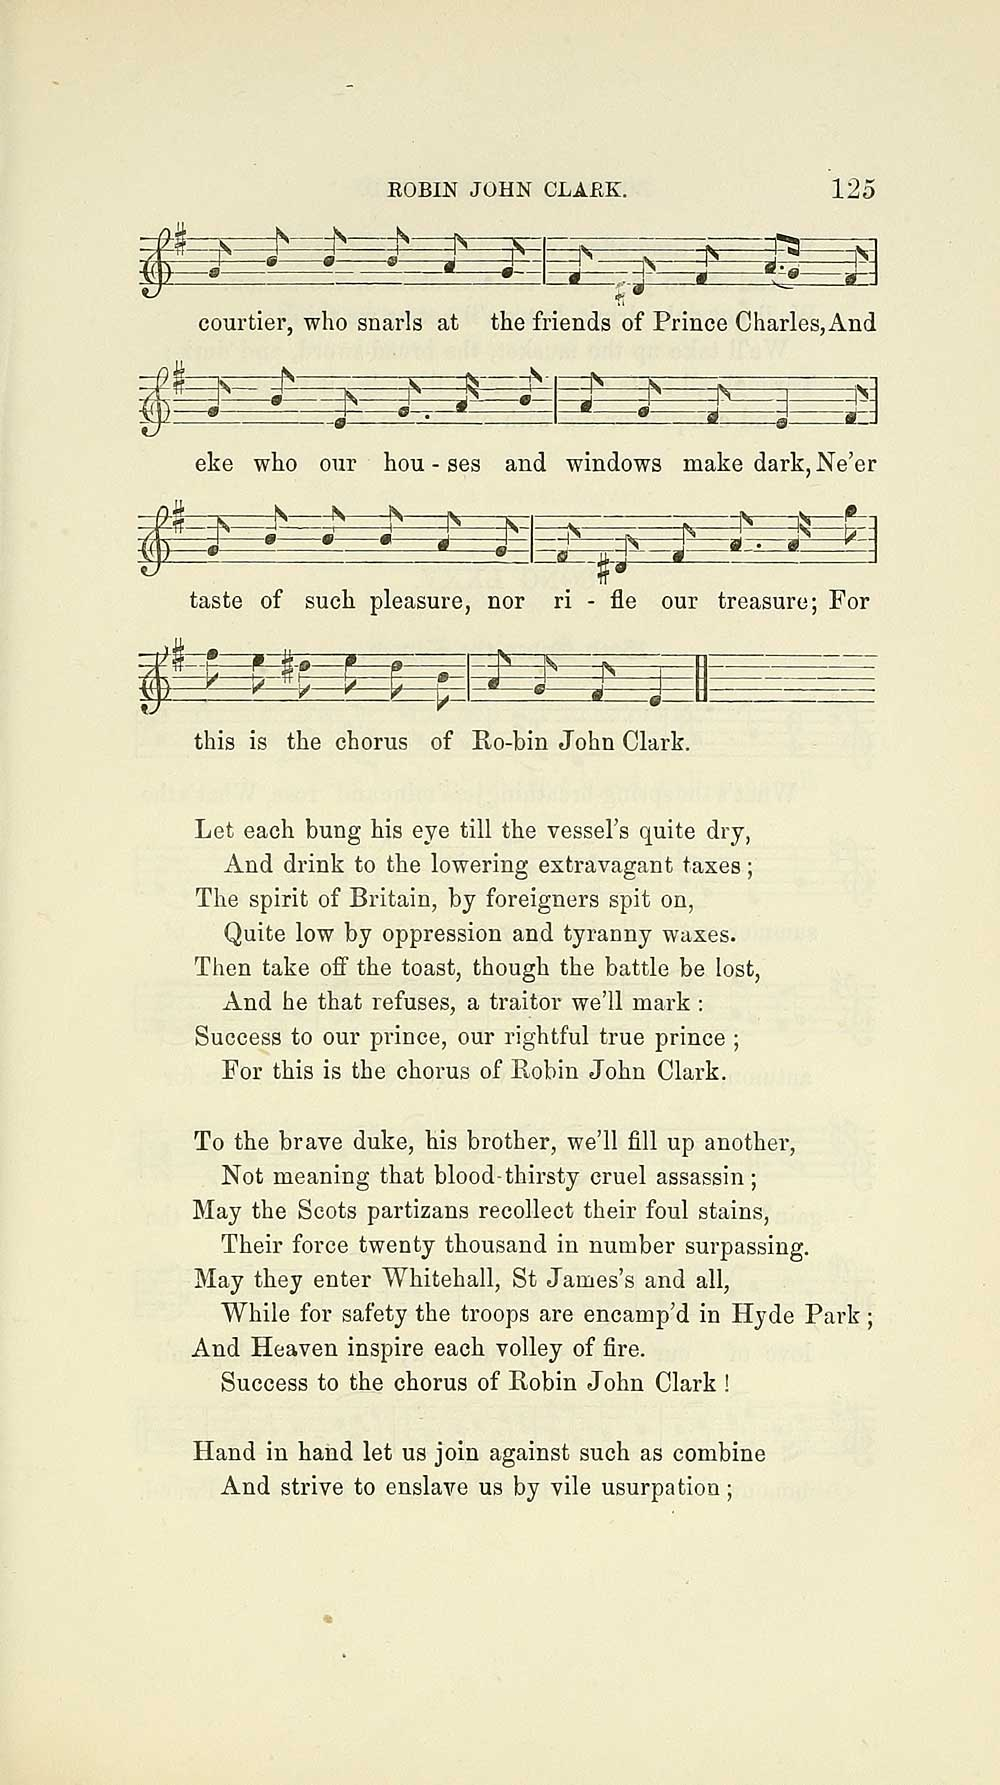 149) Page 125 - Glen Collection of printed music > Printed